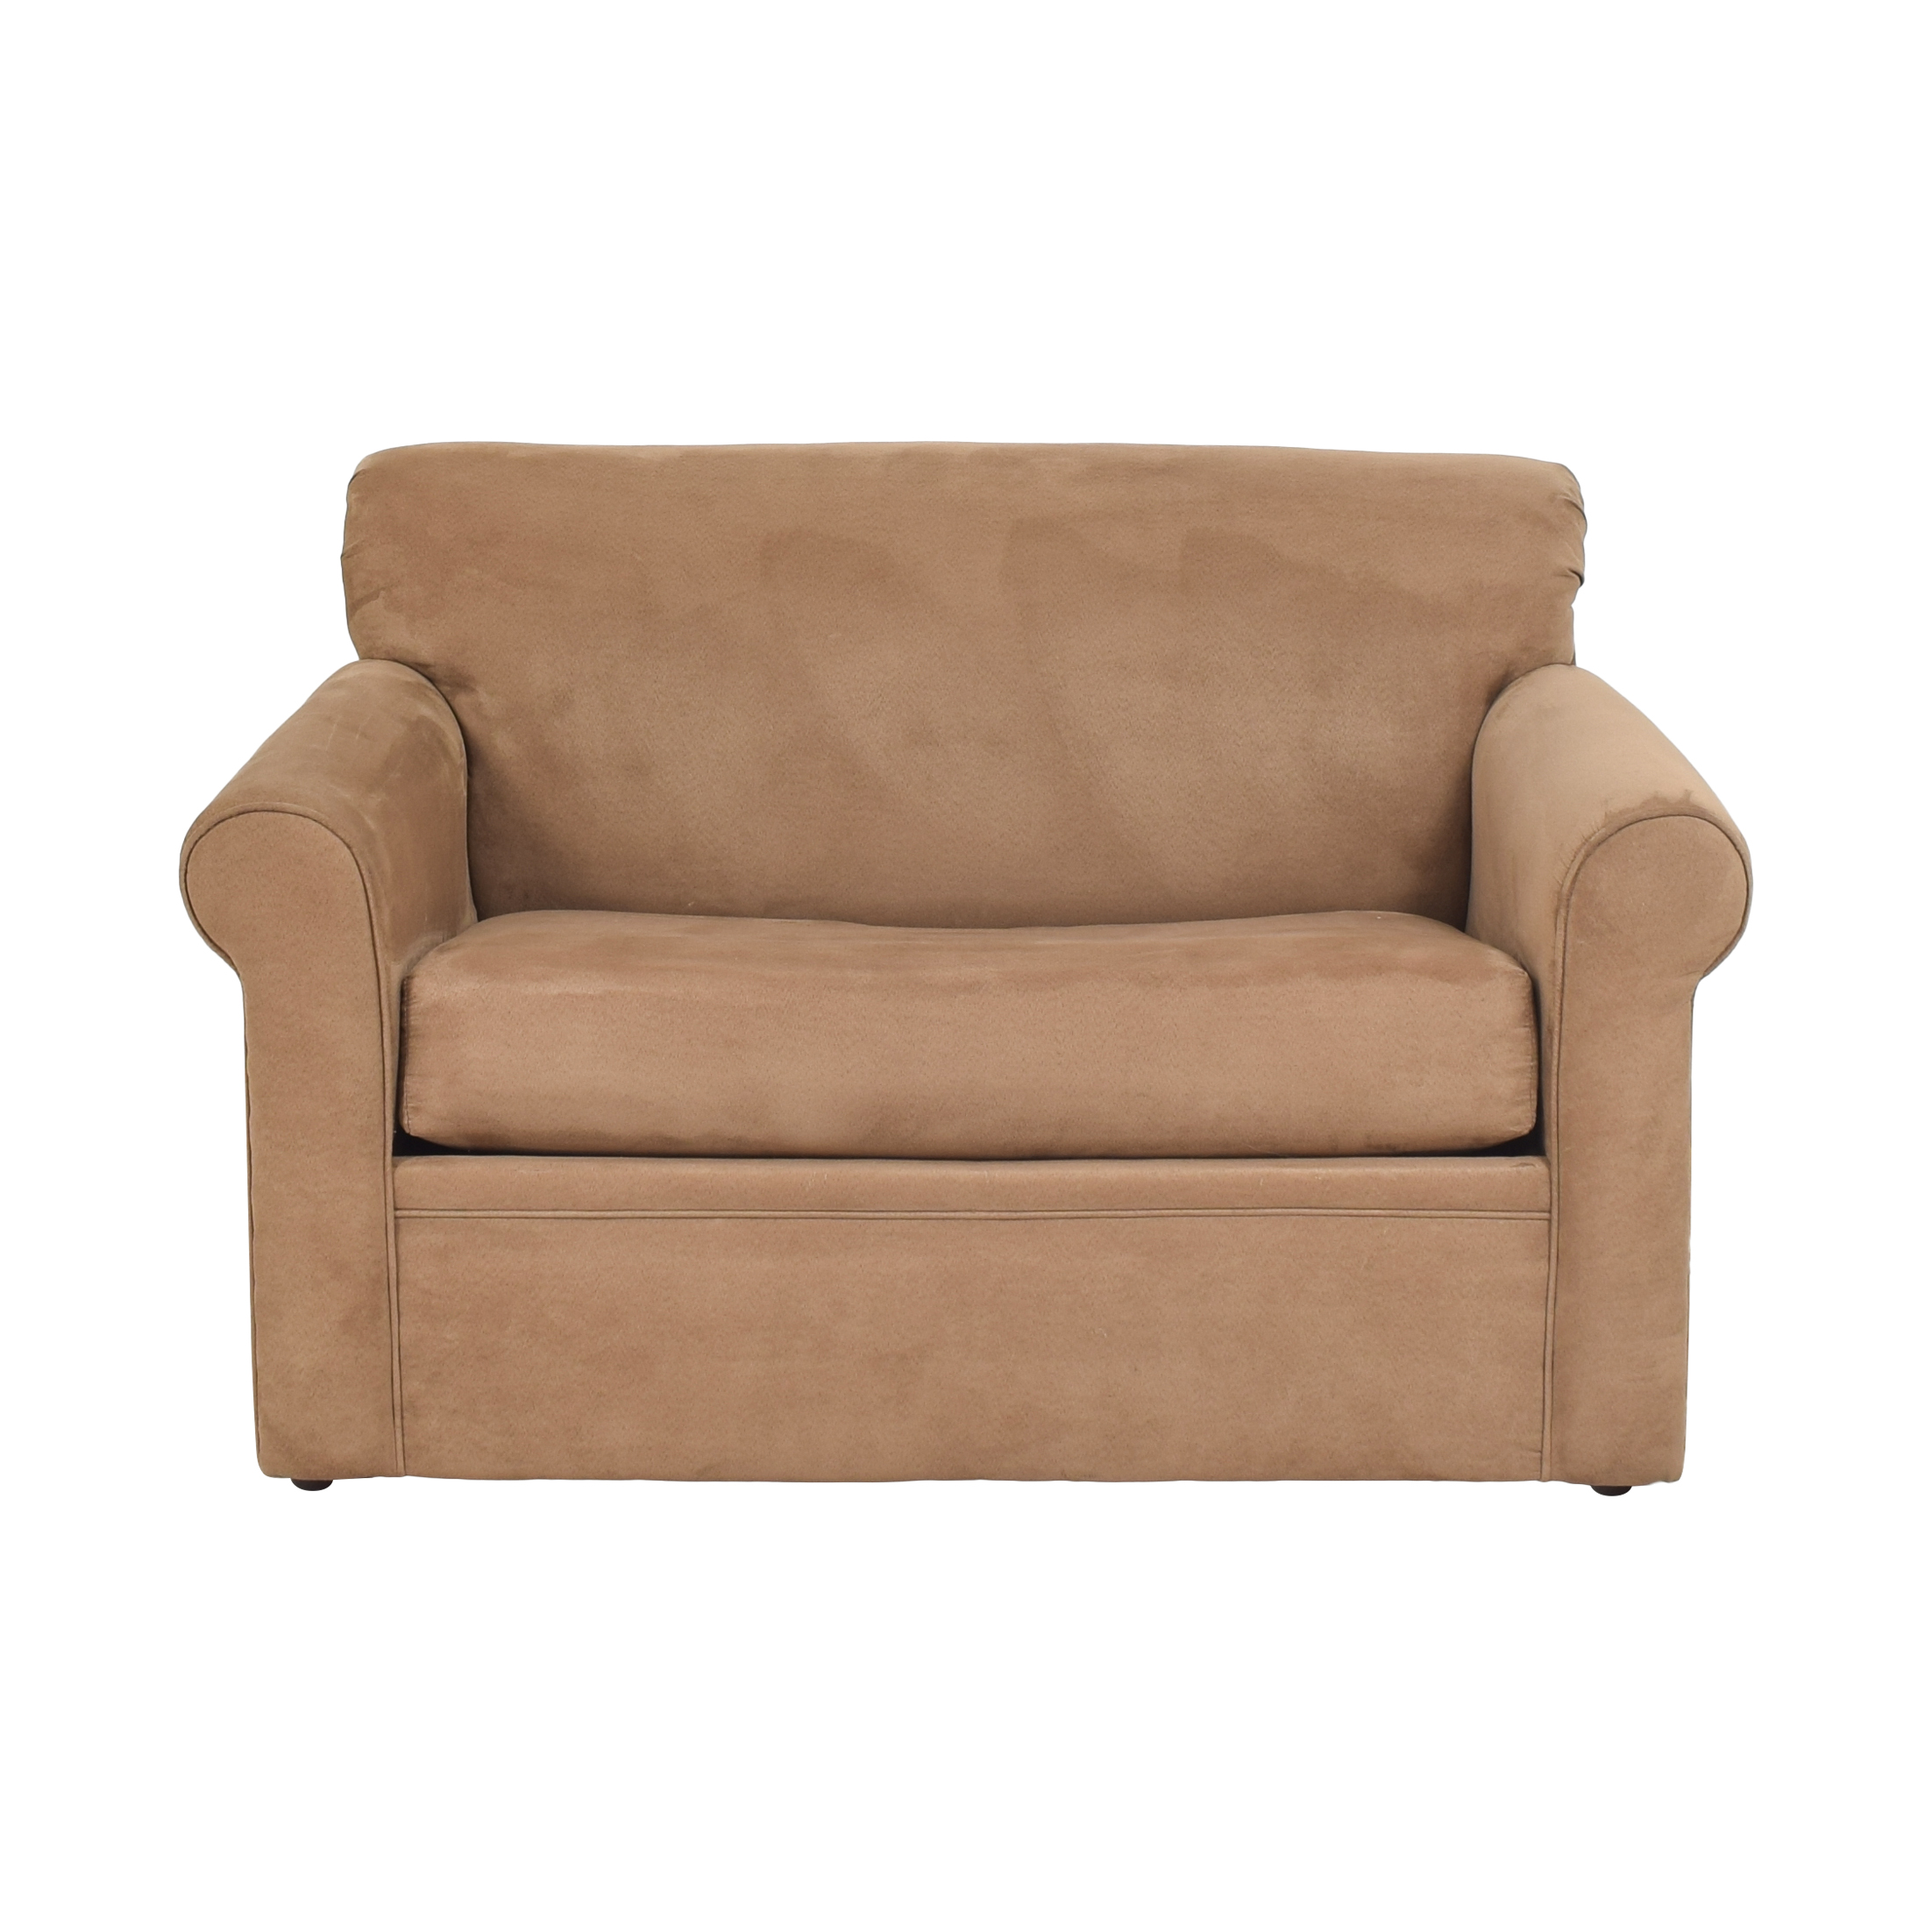 Overnight Sofa Overnight Sofa Sleeper Chair discount